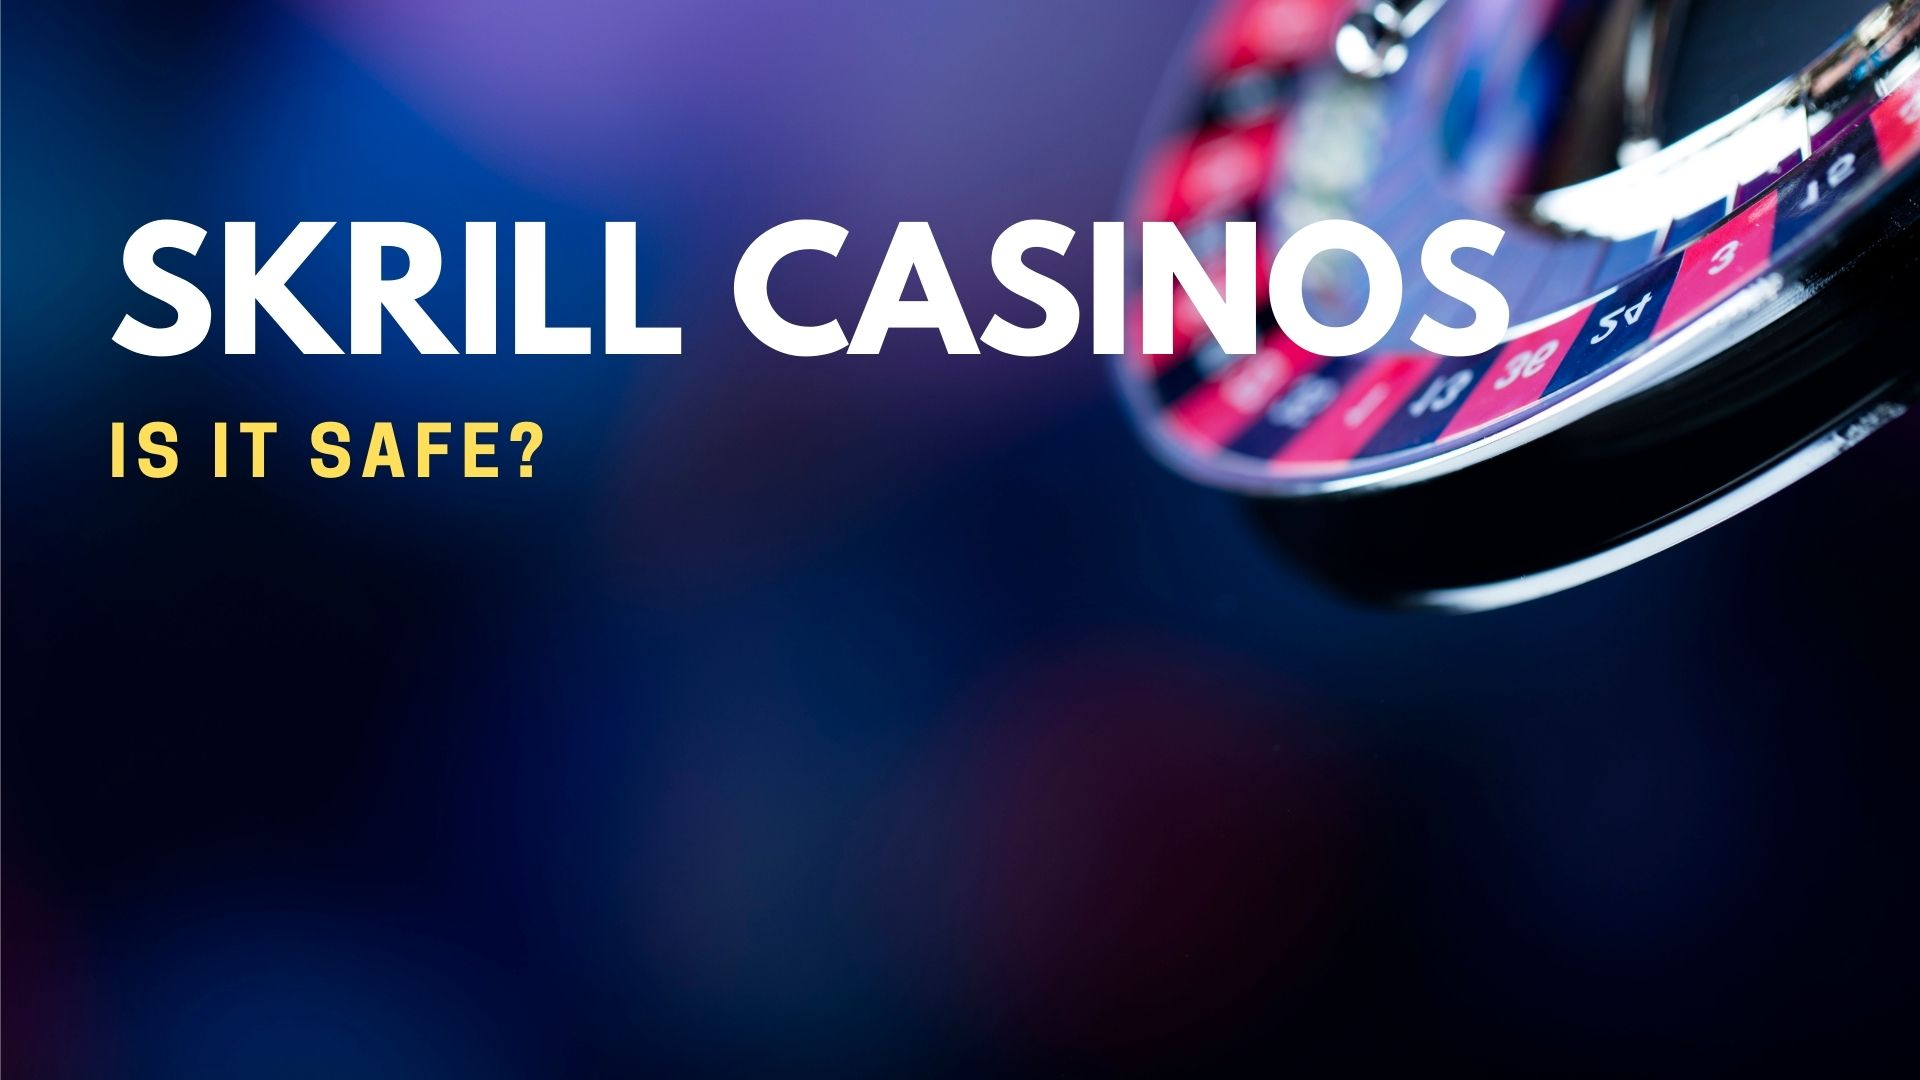 Skrill Casinos Is It Safe